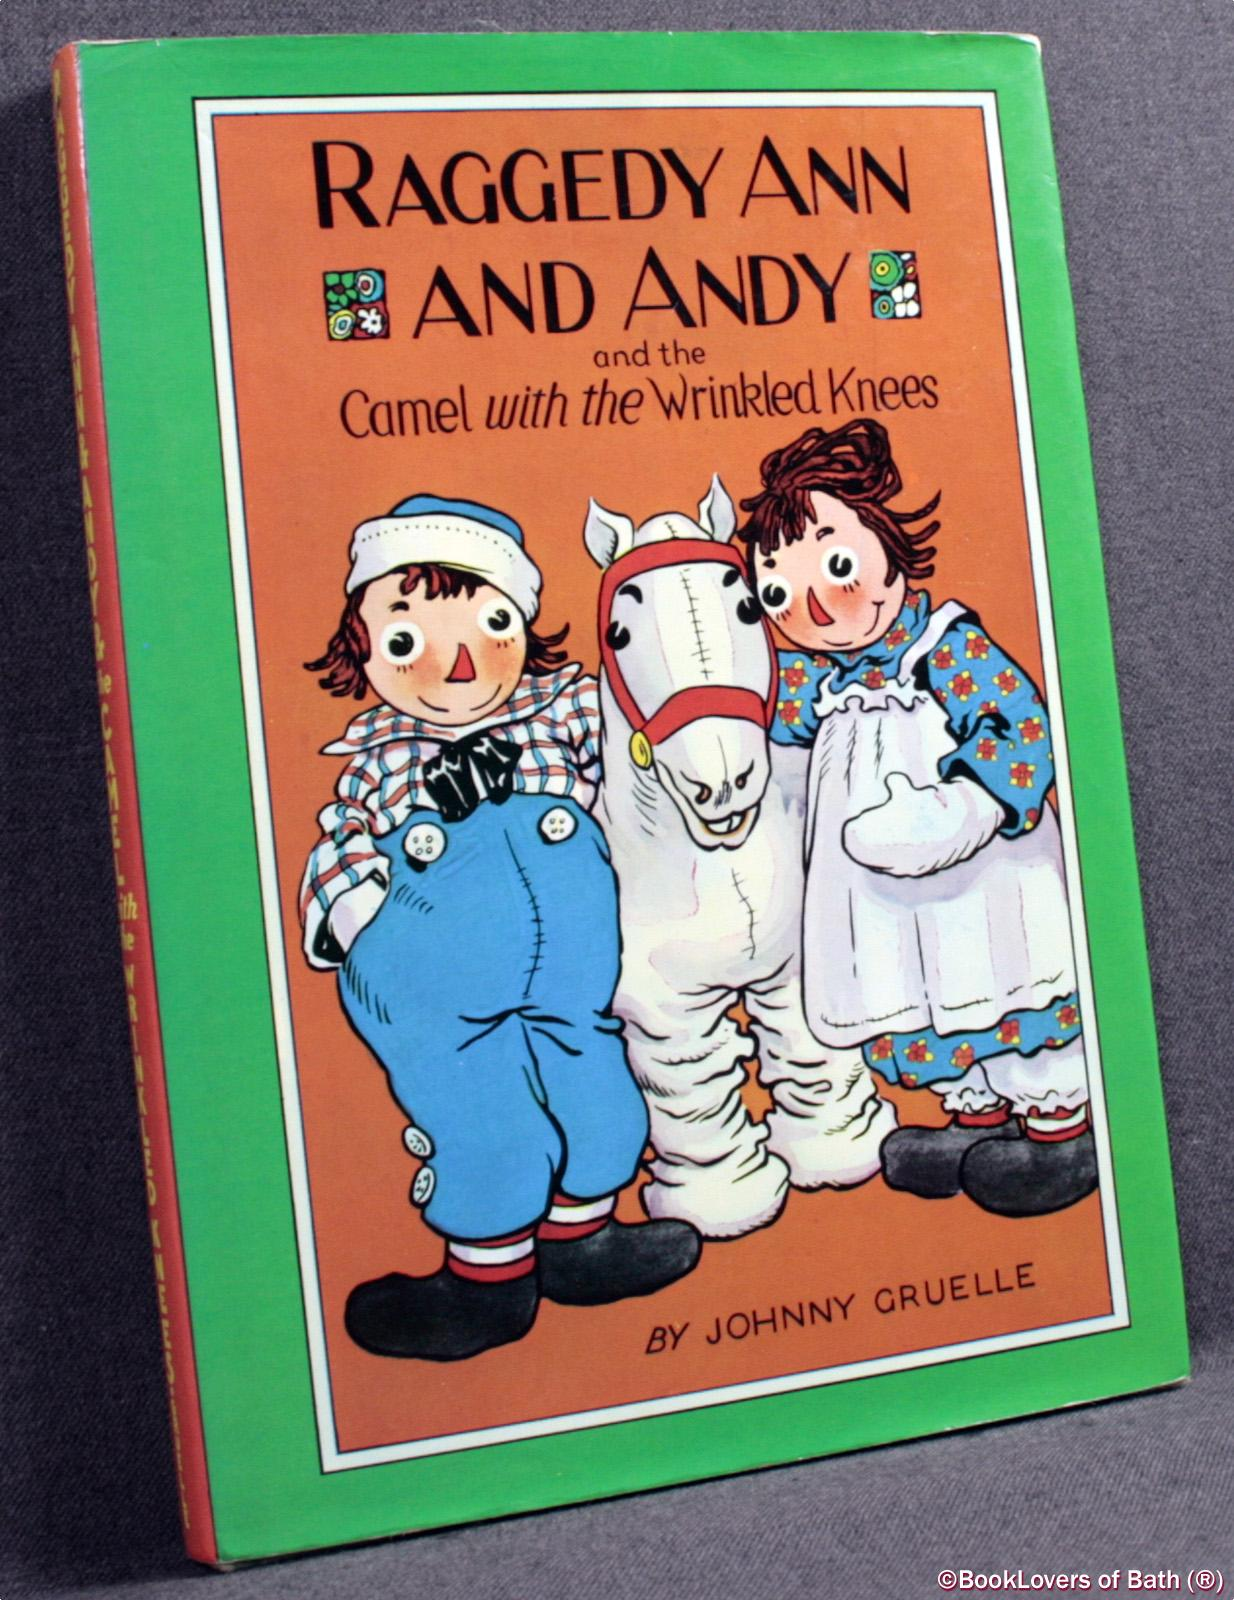 Raggedy Ann and Andy and the Camel with Wrinkled Knees - Johnny Gruelle